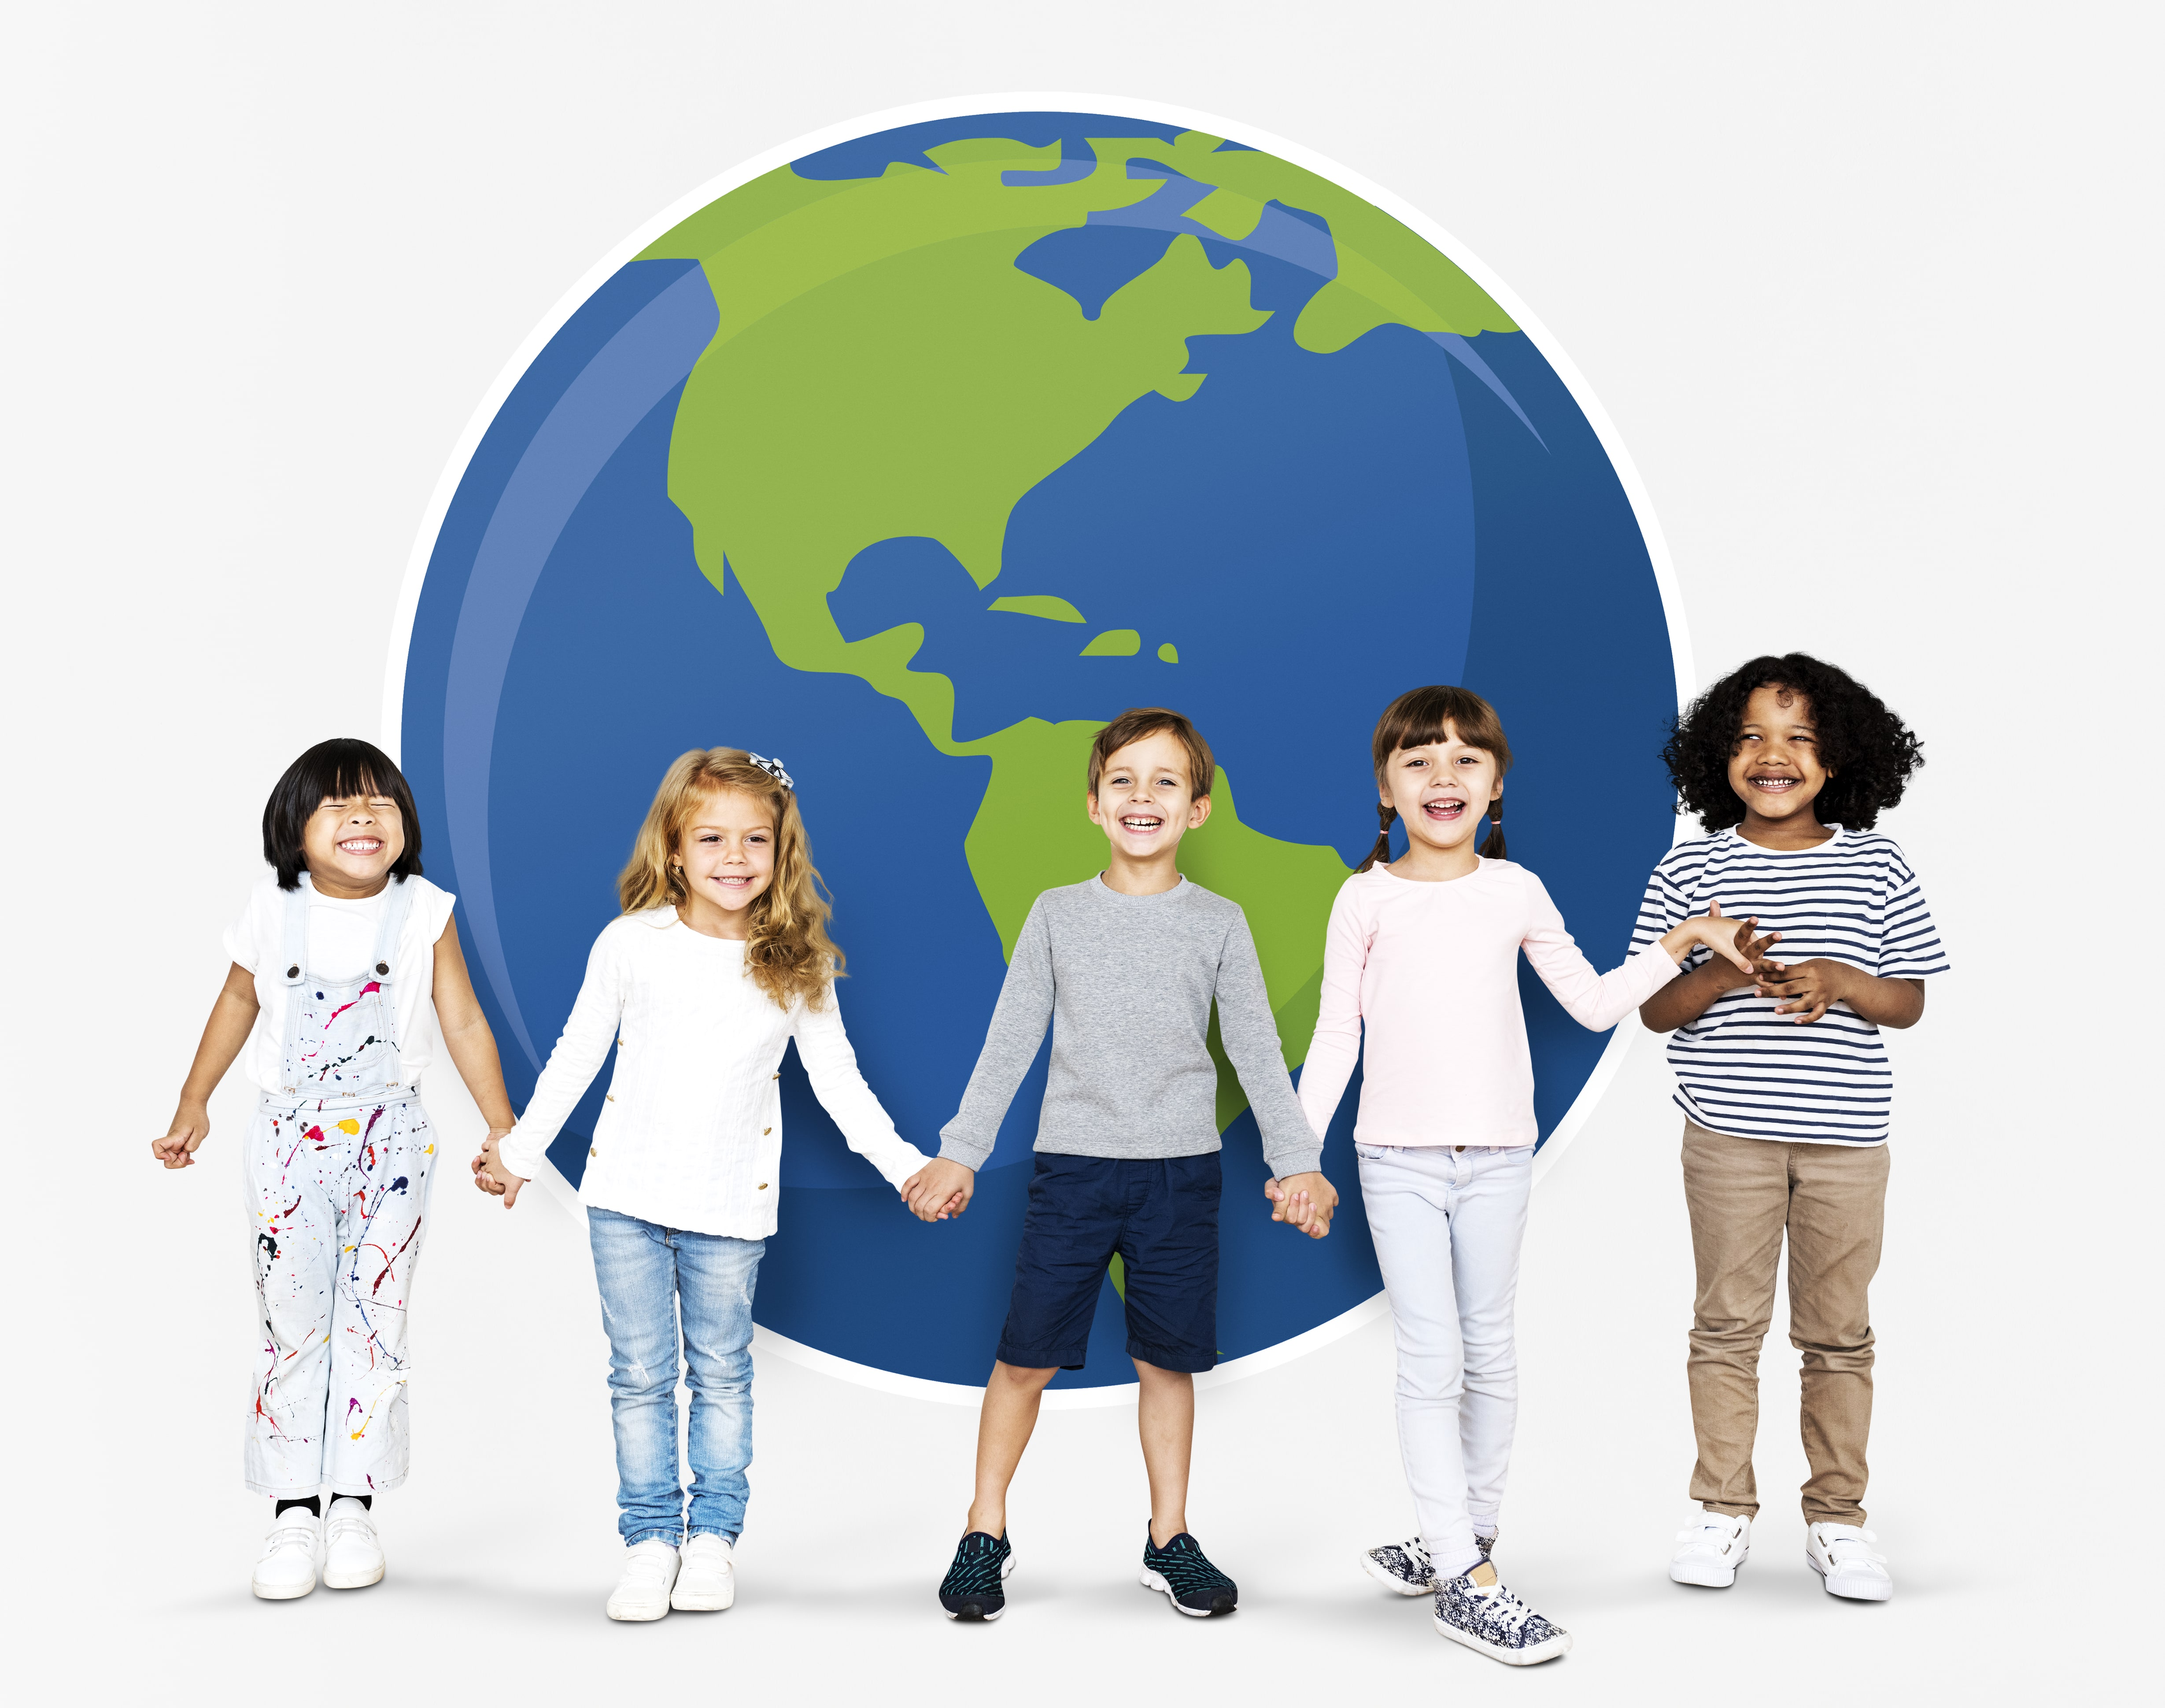 5 children in a line holding hands in front of a illustration of the earth